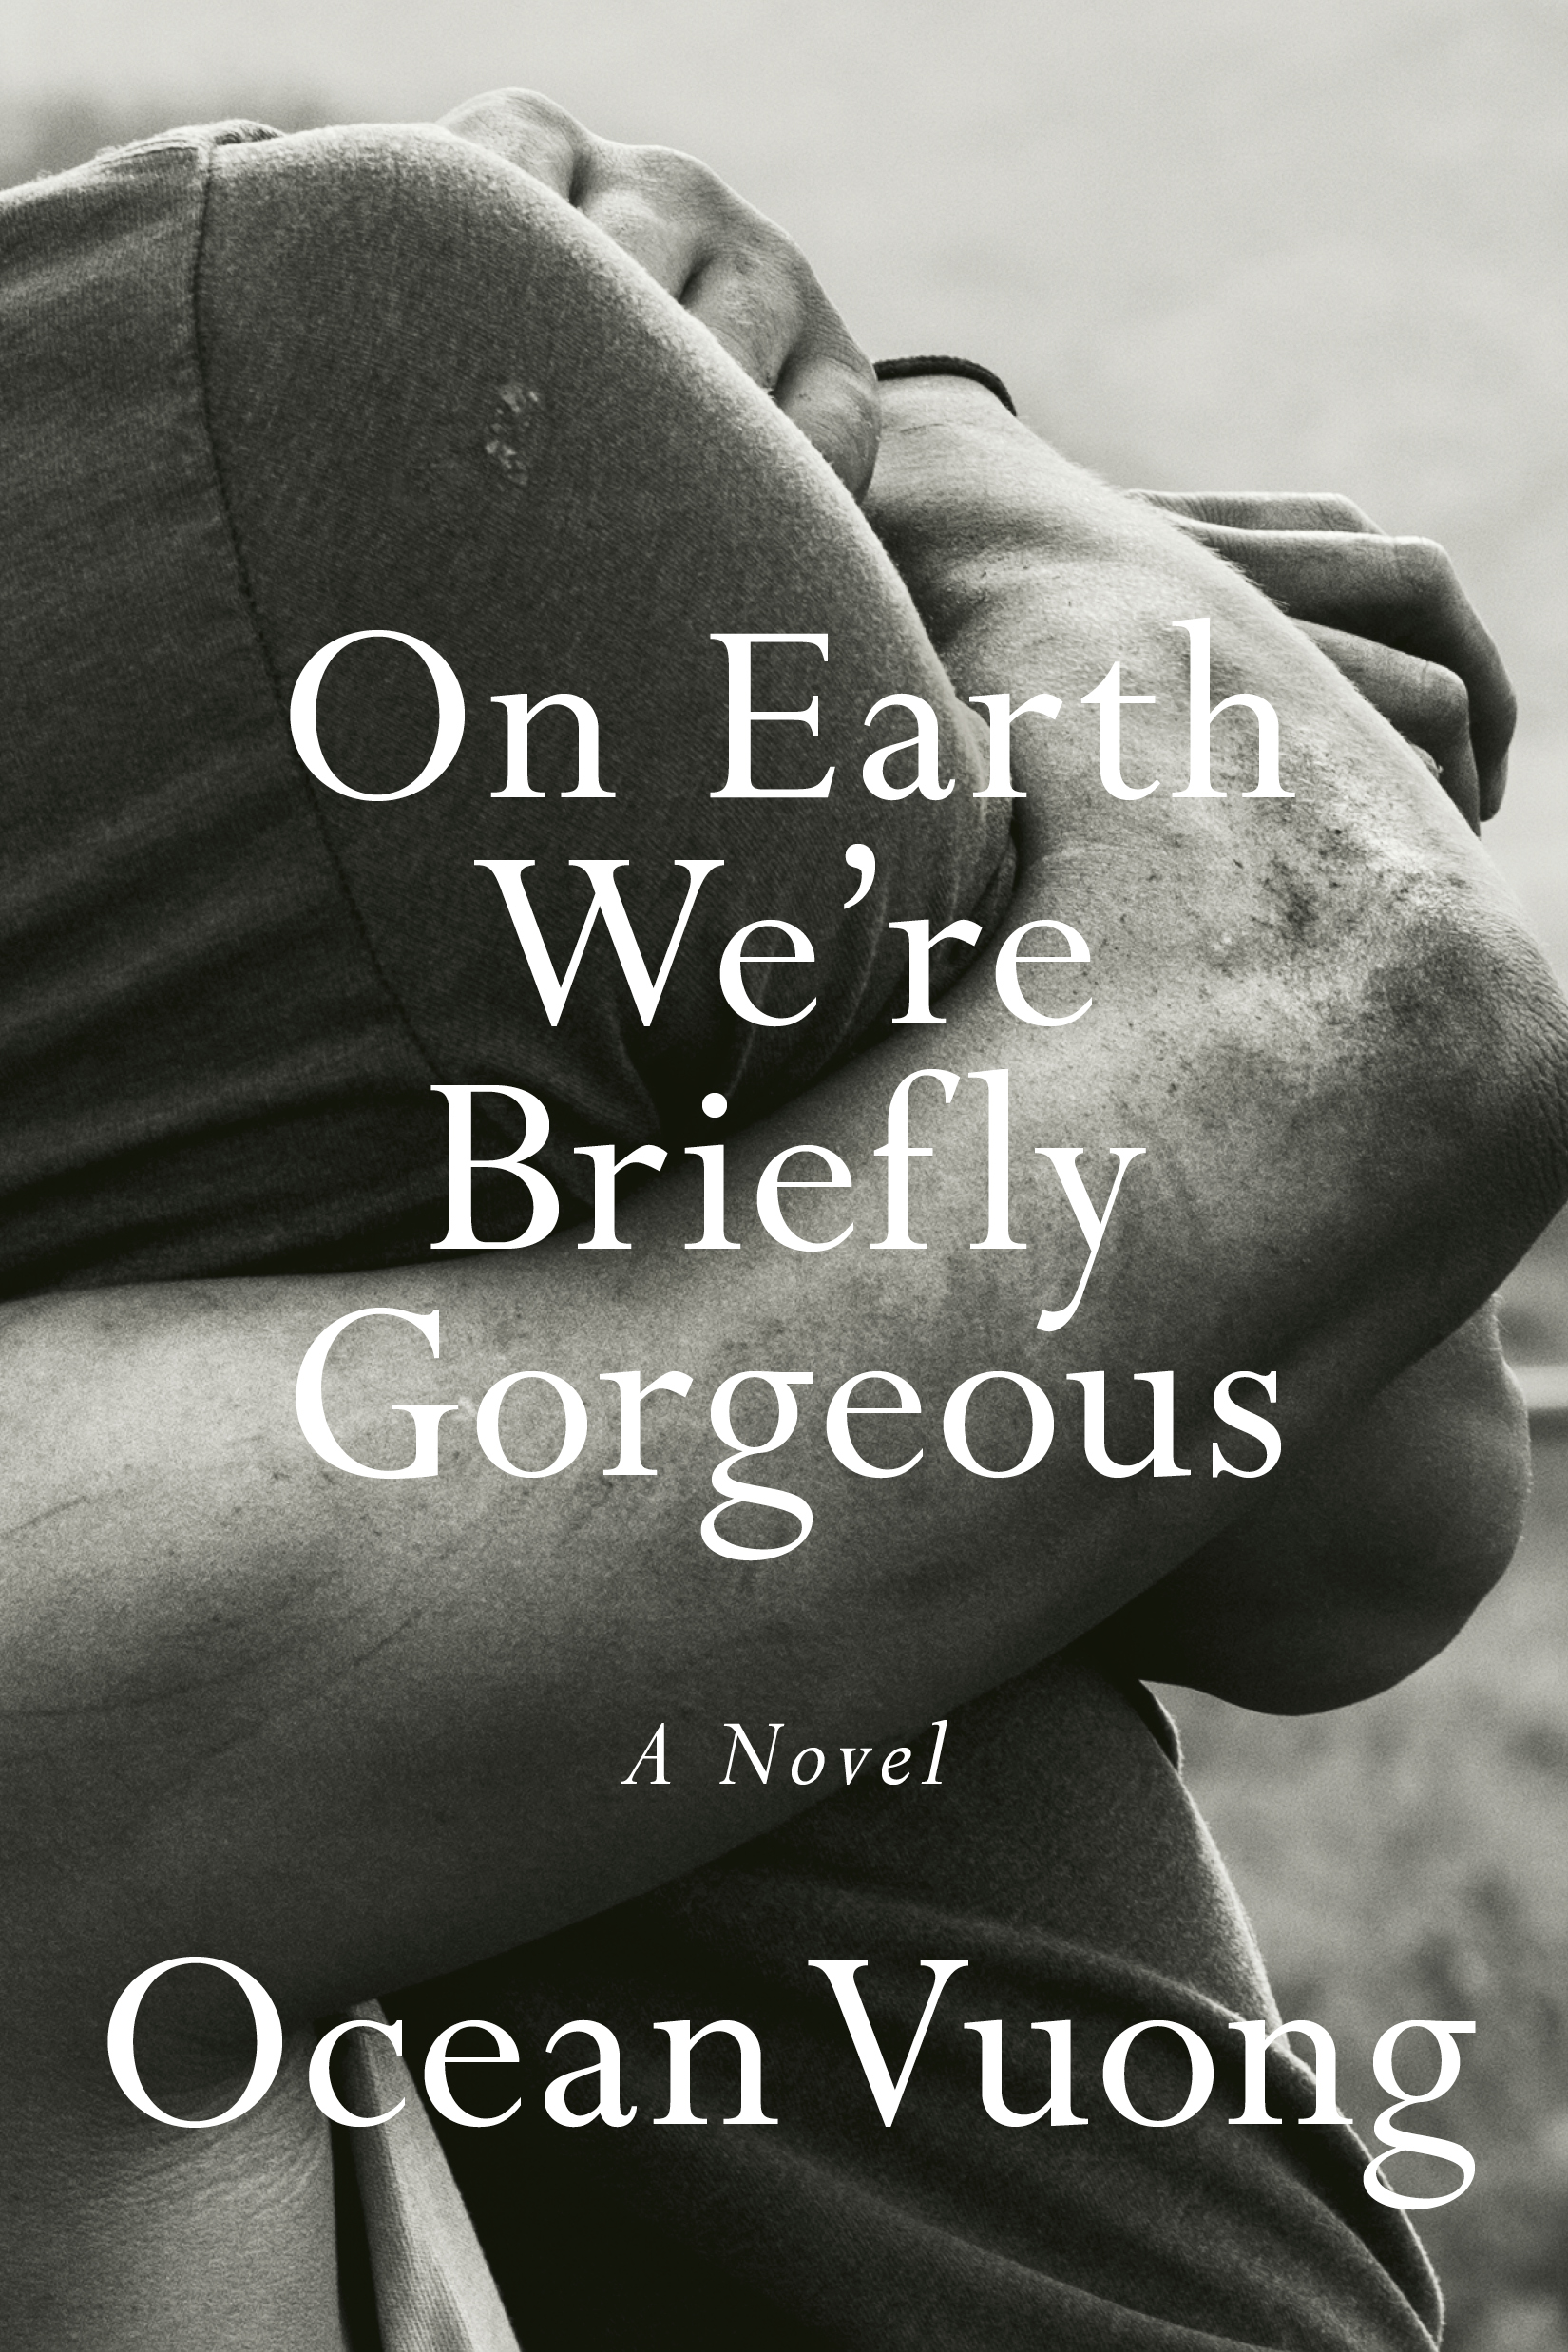 On Earth We're Briefly Gorgeous by Ocean Vuong.jpg